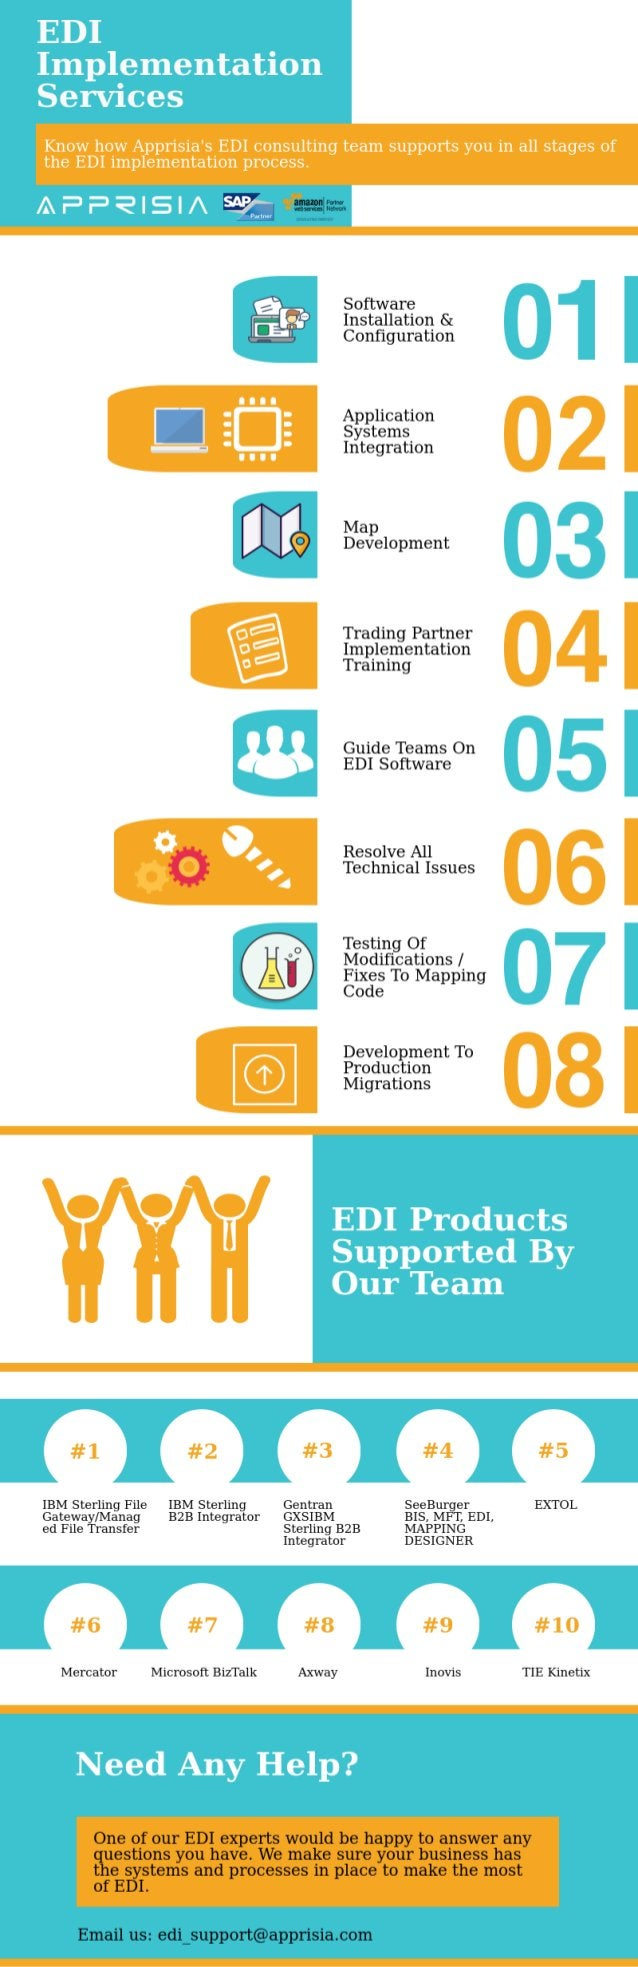 Get Aware of EDI Implementation Services We Offer | Apprisia